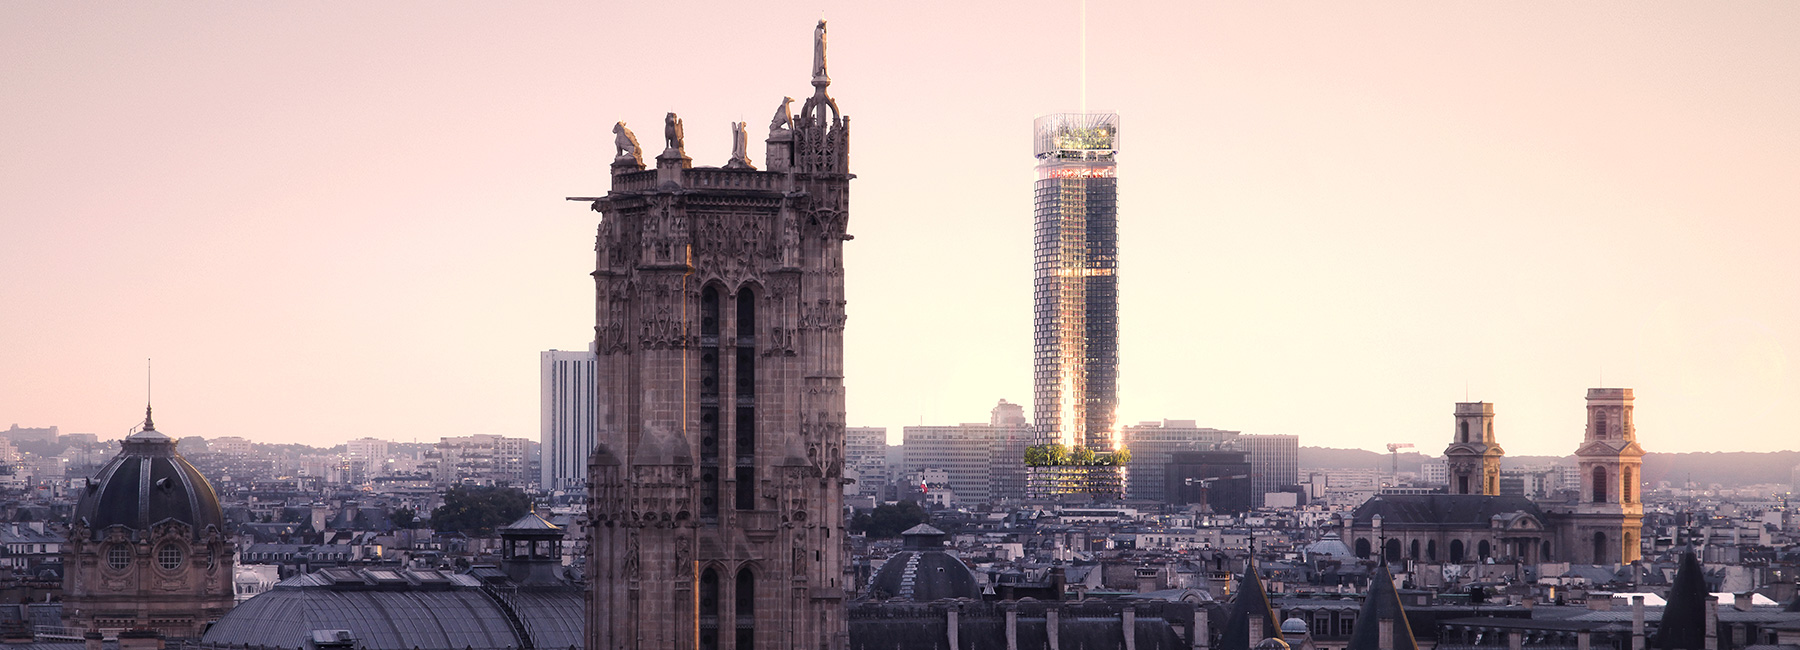 Carrefour de Buci Paris, nouvelle AOM chosen to overhaul paris' tour montparnasse